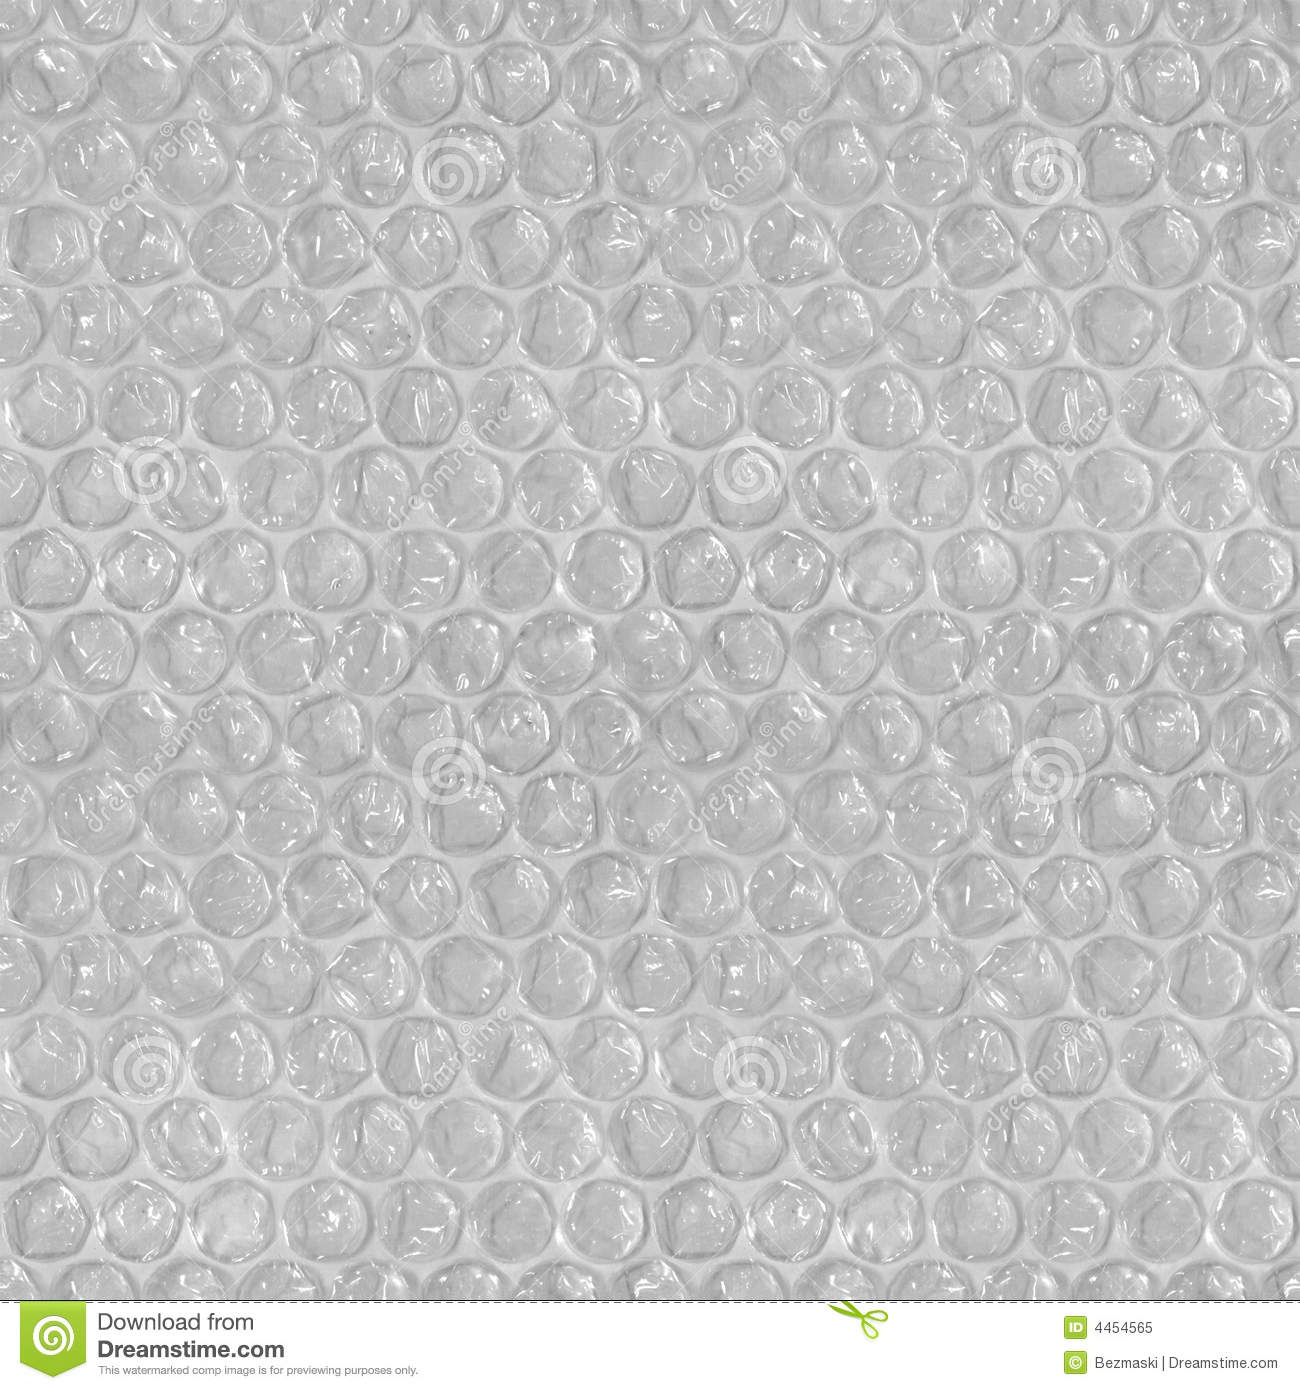 bubble wrap seamless texture stock image image of cargo. Black Bedroom Furniture Sets. Home Design Ideas